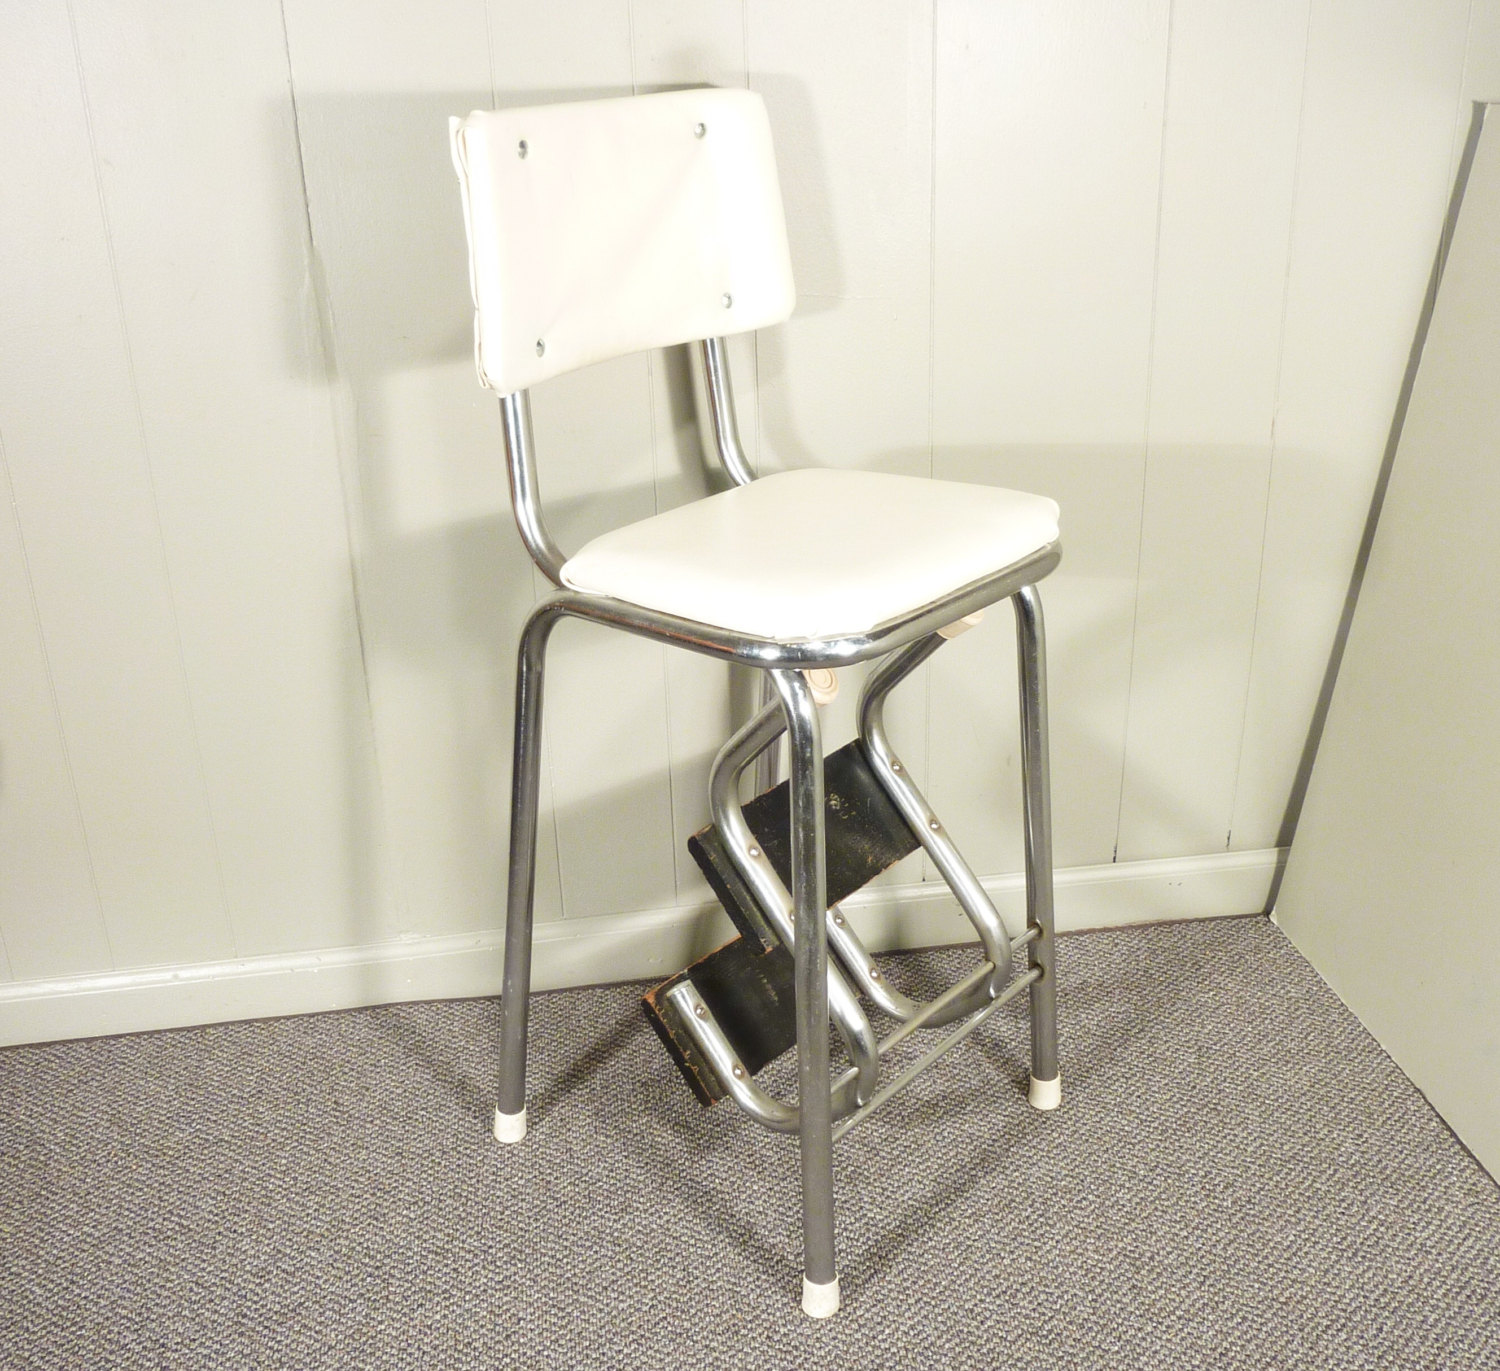 vintage kitchen chair with steps photo - 6